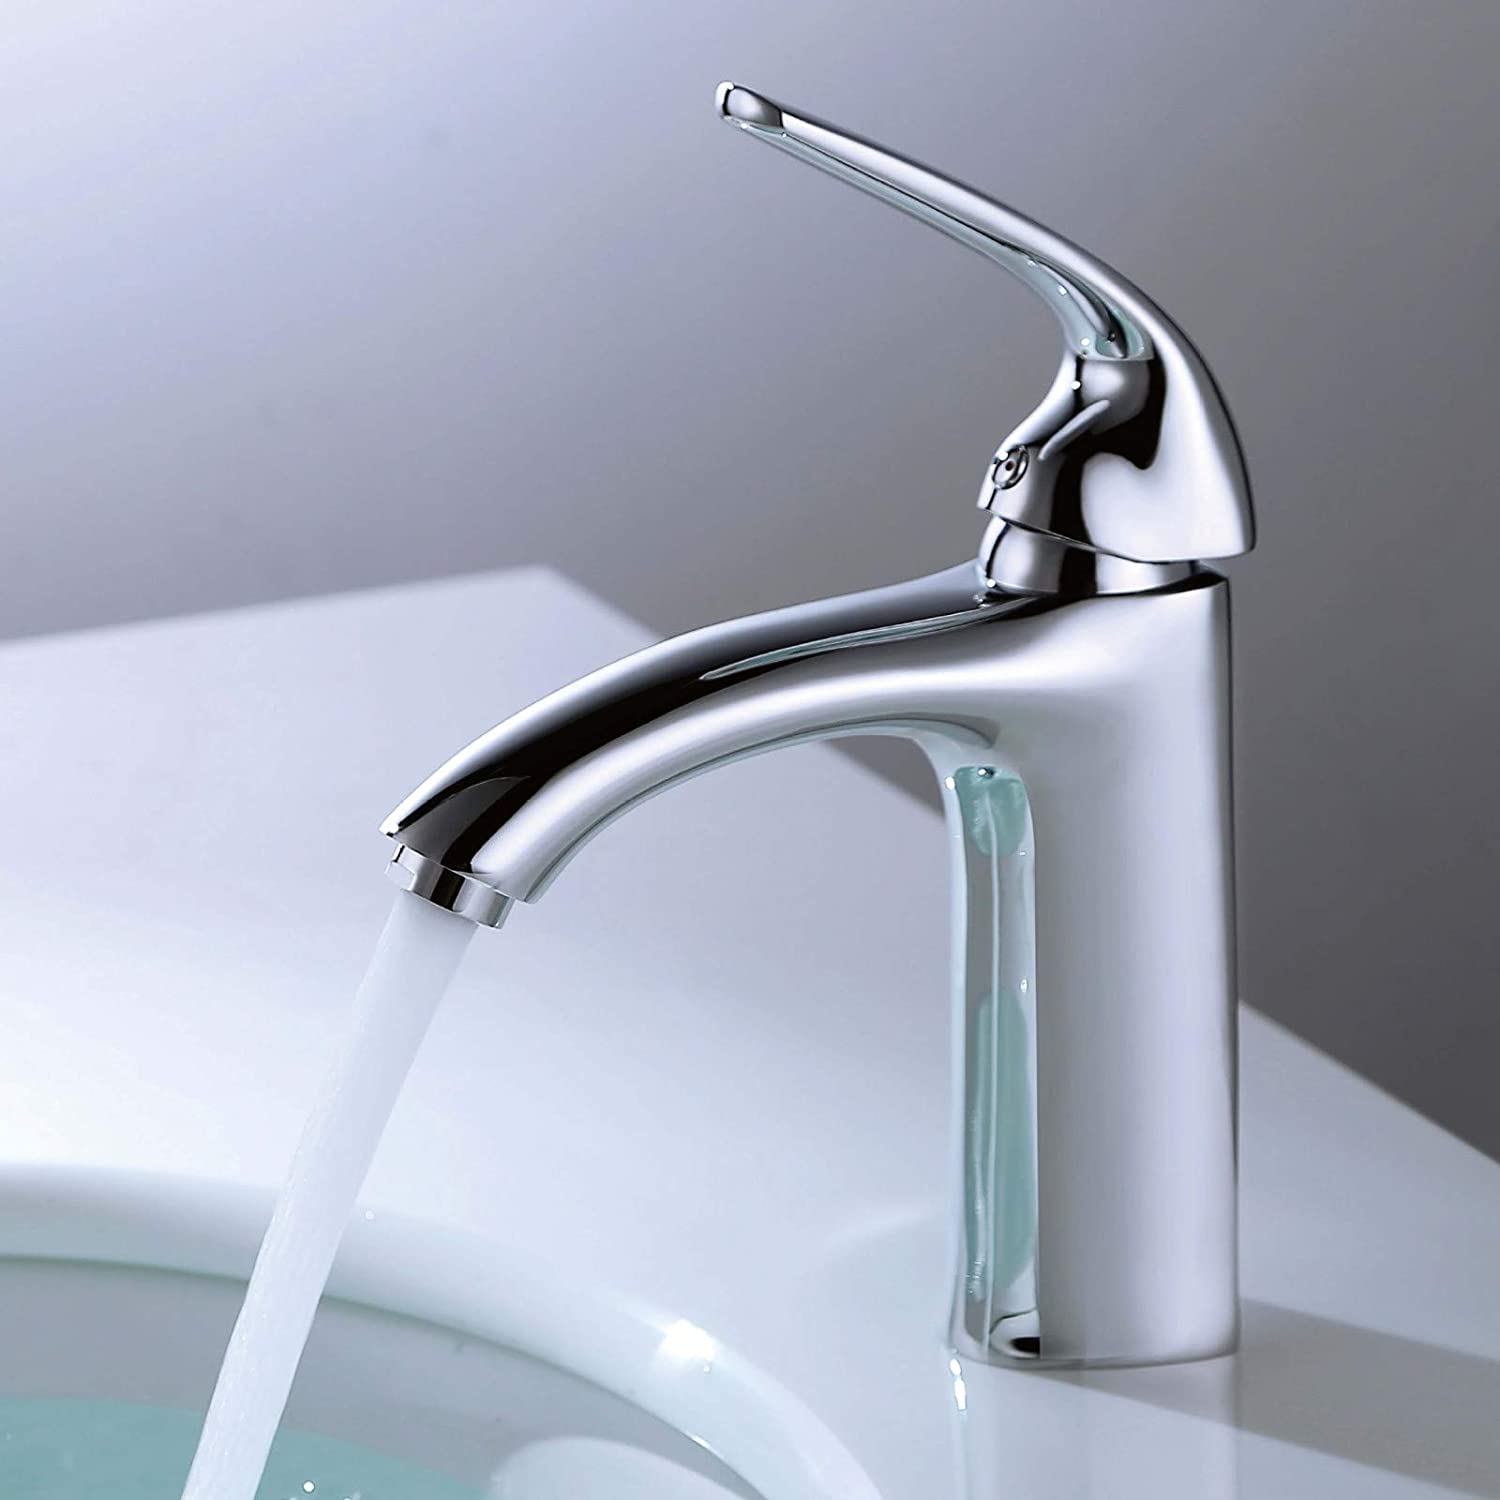 redOOY Taps Single Handle Basin Faucet Hot And Cold Above Counter Basin Faucet